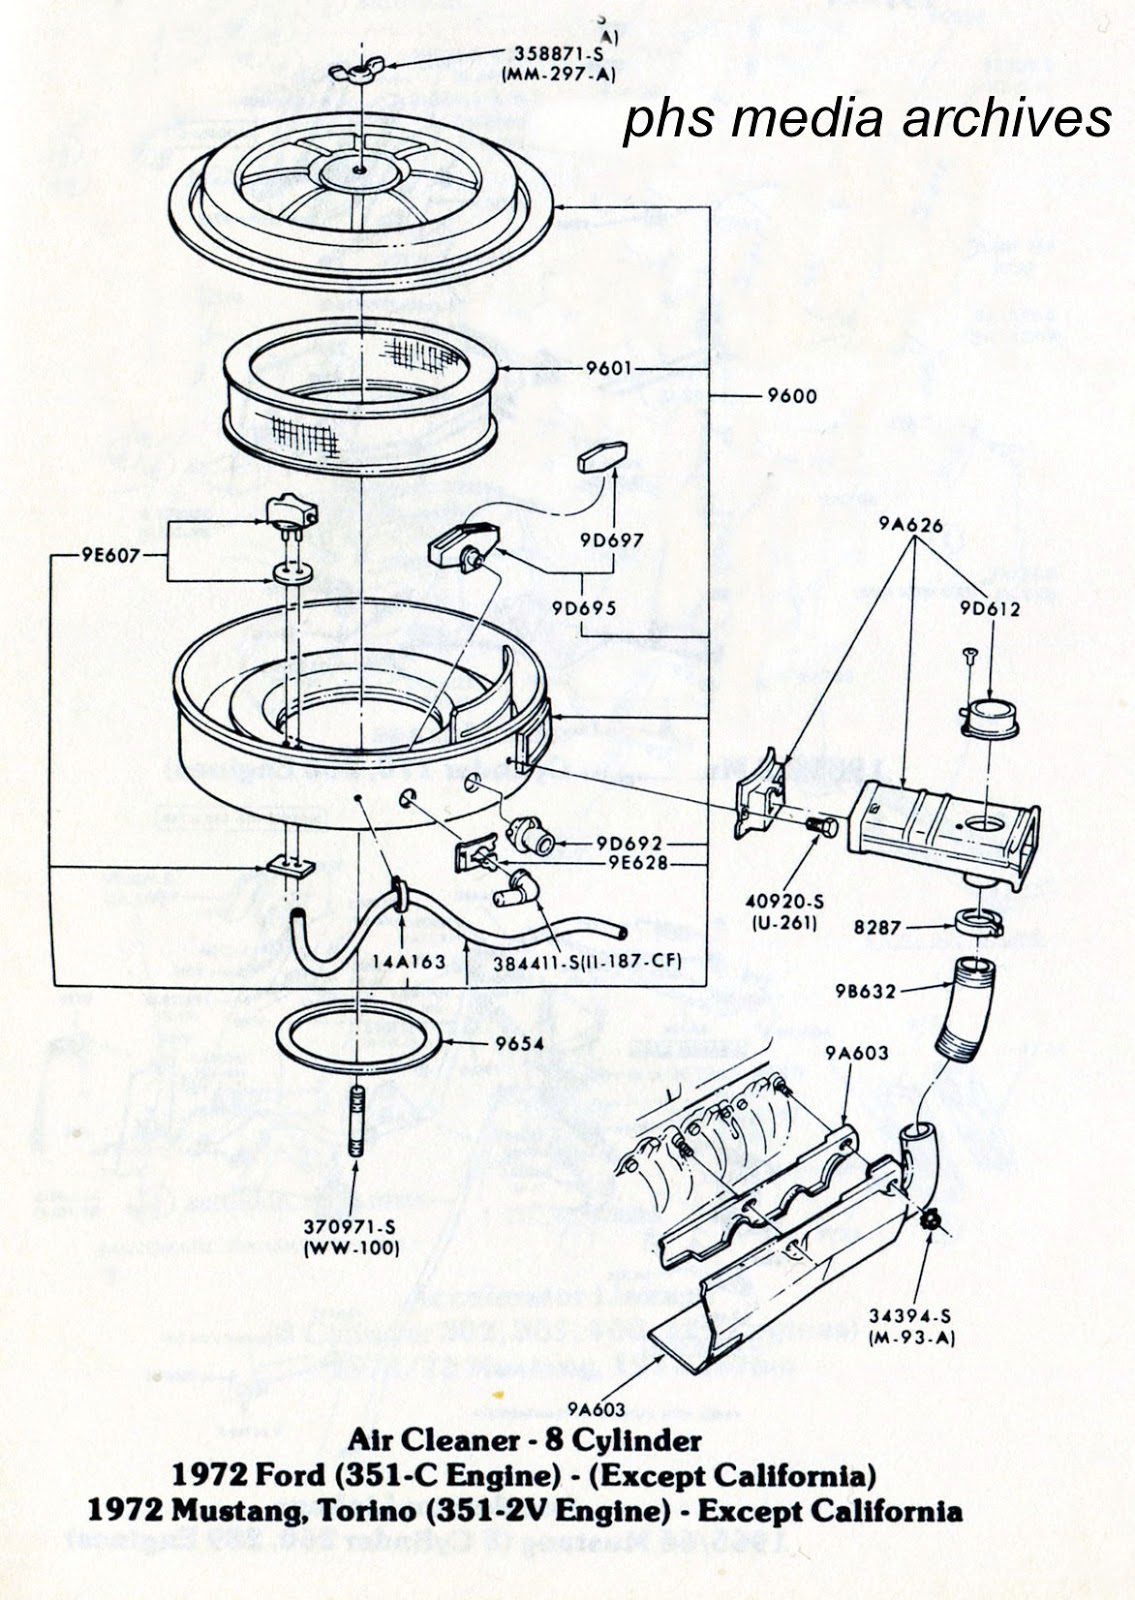 tech series ford mustang air cleaner id guide 1971 1973 1973 Mustang Mach 1 sharing ponents with torino became more obvious by 1972